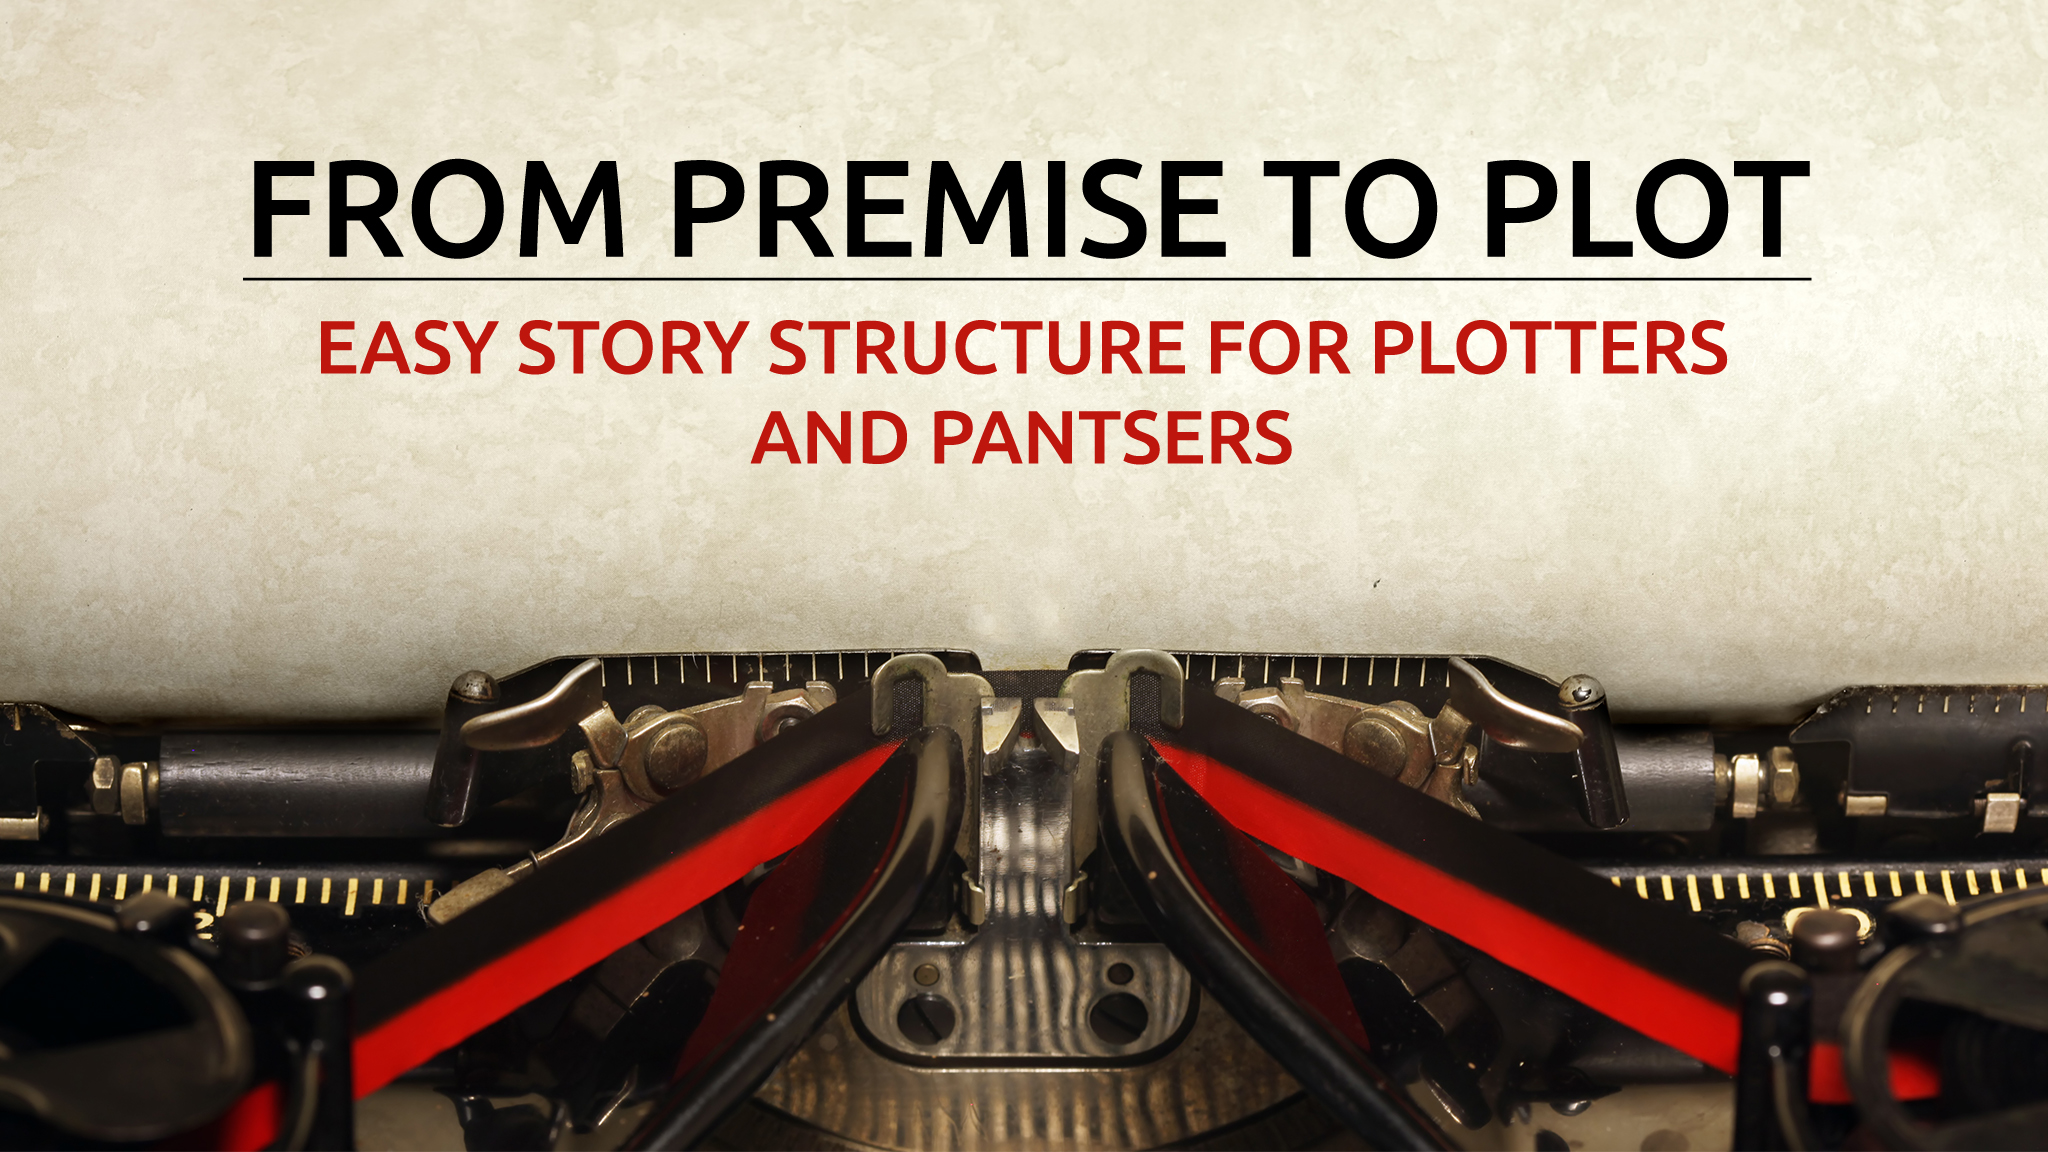 Enter for a Grand Prize: From Premise to Plot course by Lynn